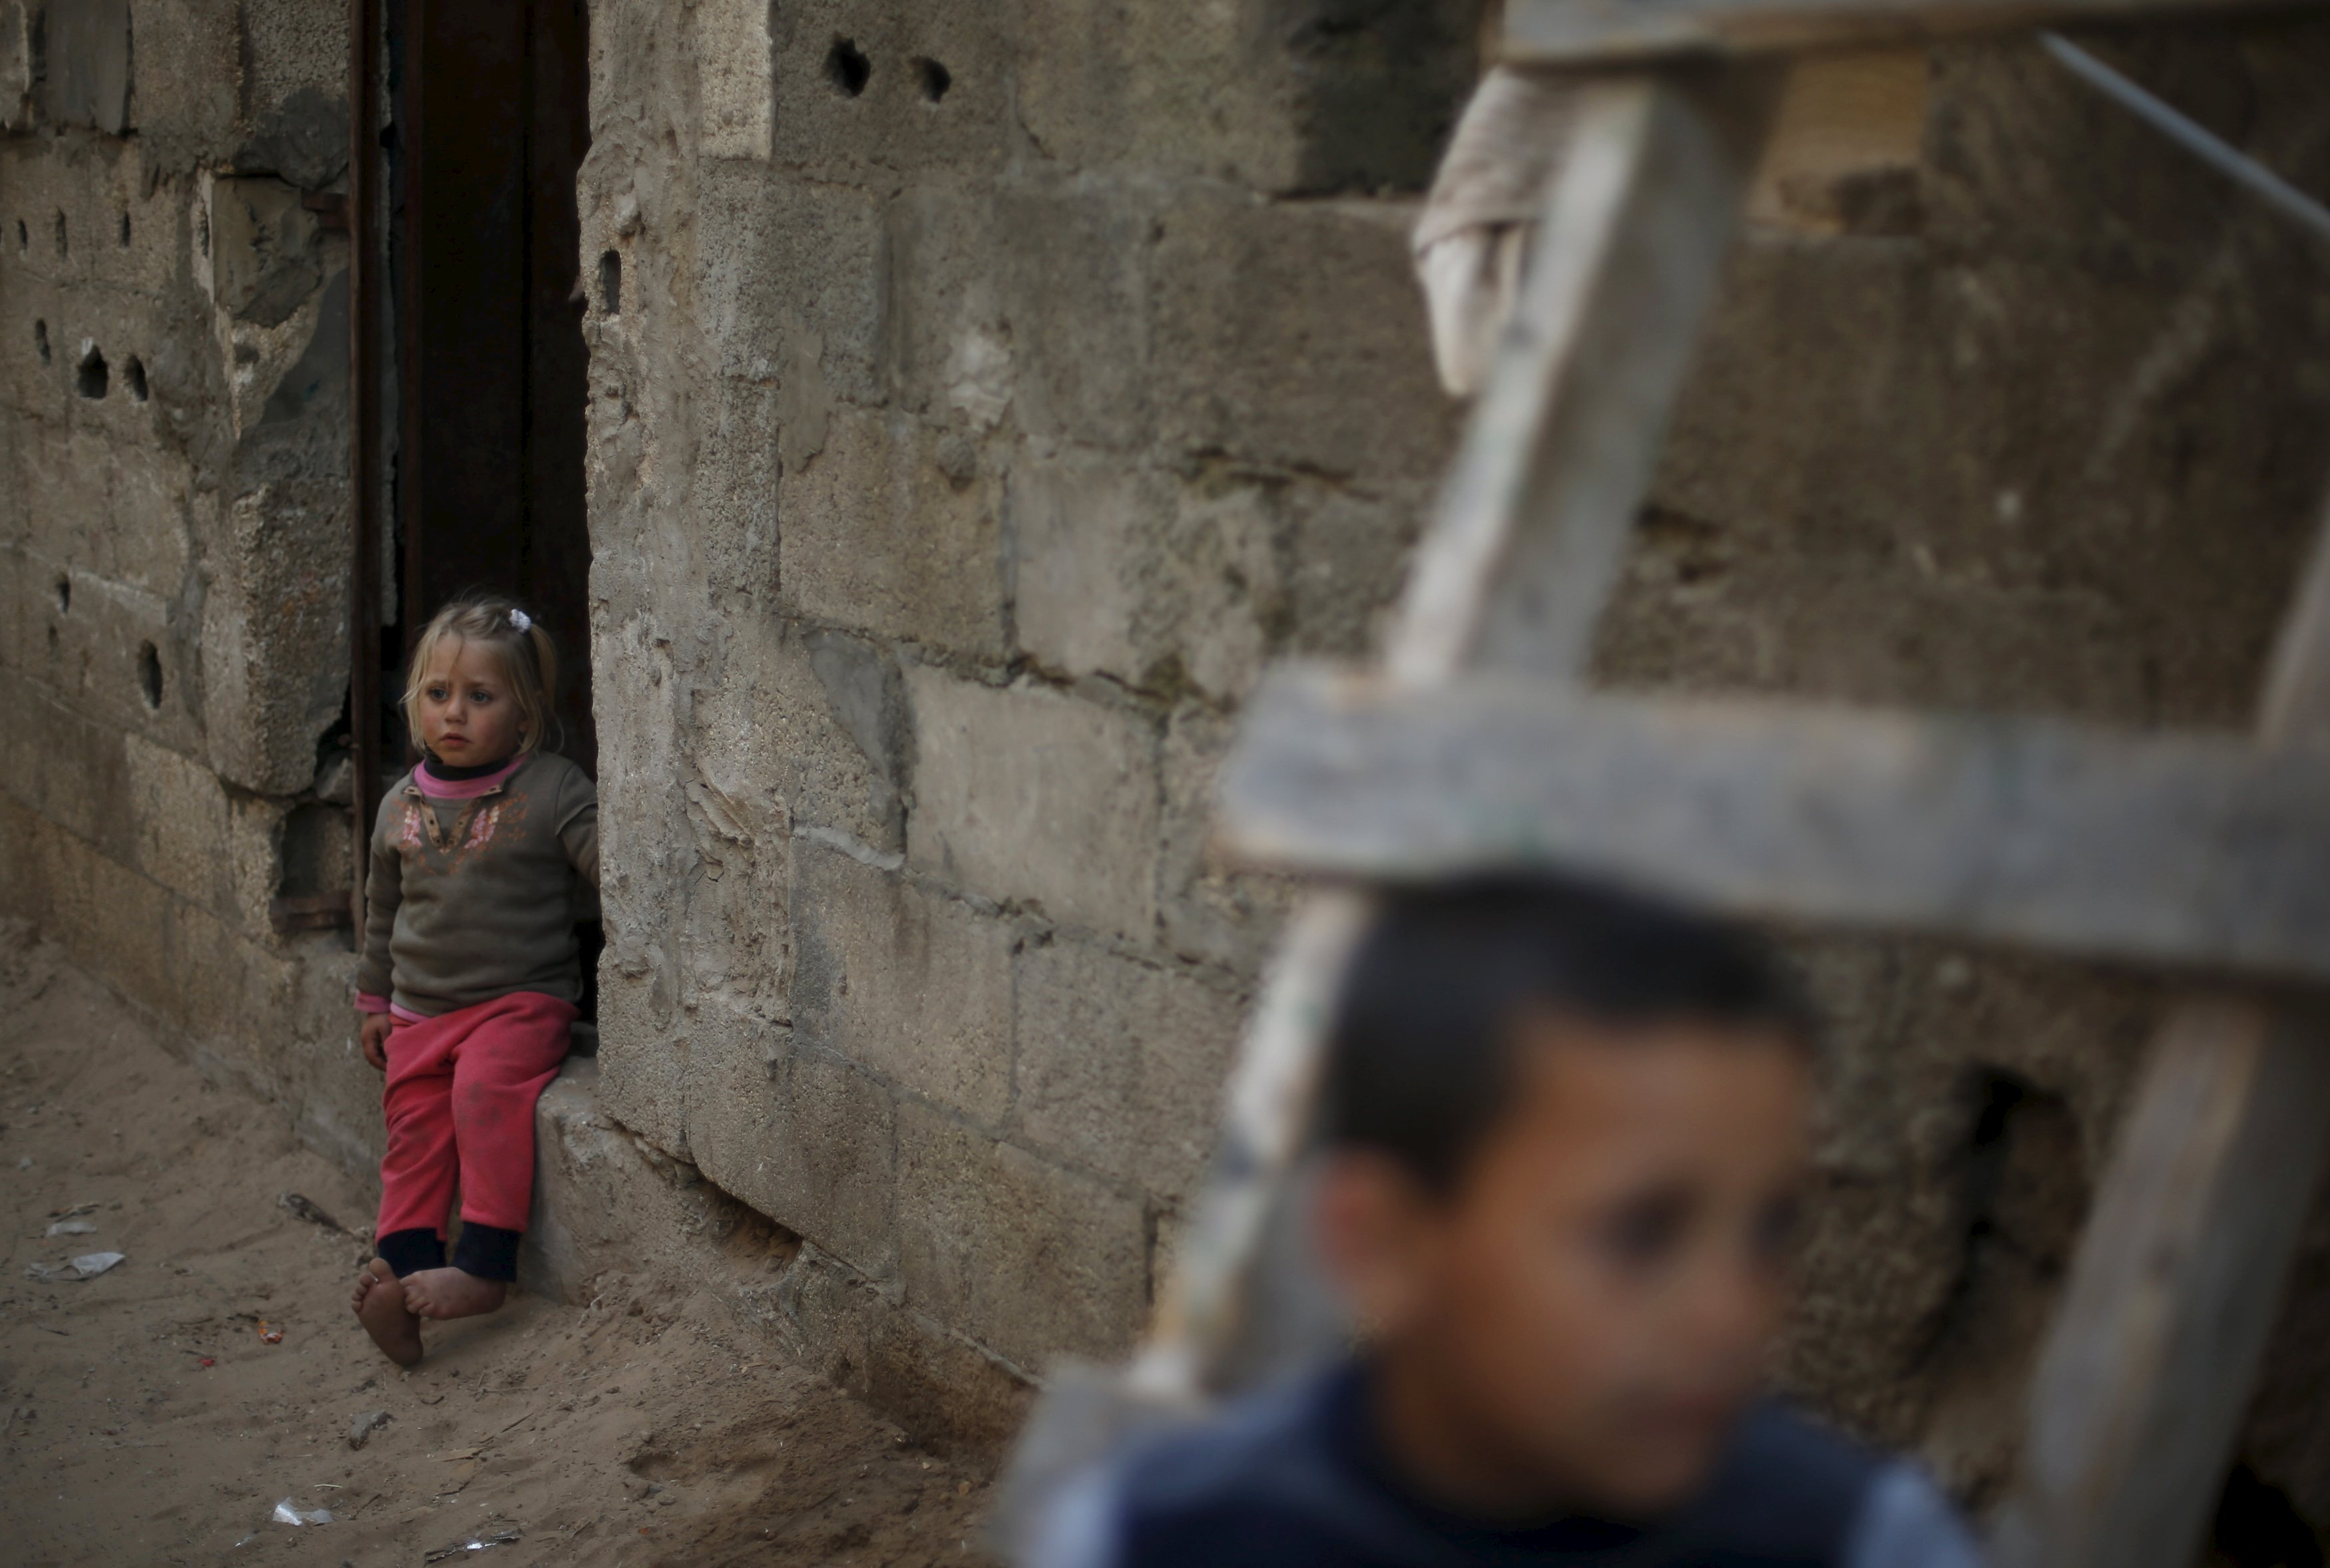 A Palestinian girl sits at the entrance of her family's house in Biet Lahiya, Gaza, March 24. Mohammed Salem/Reuters.